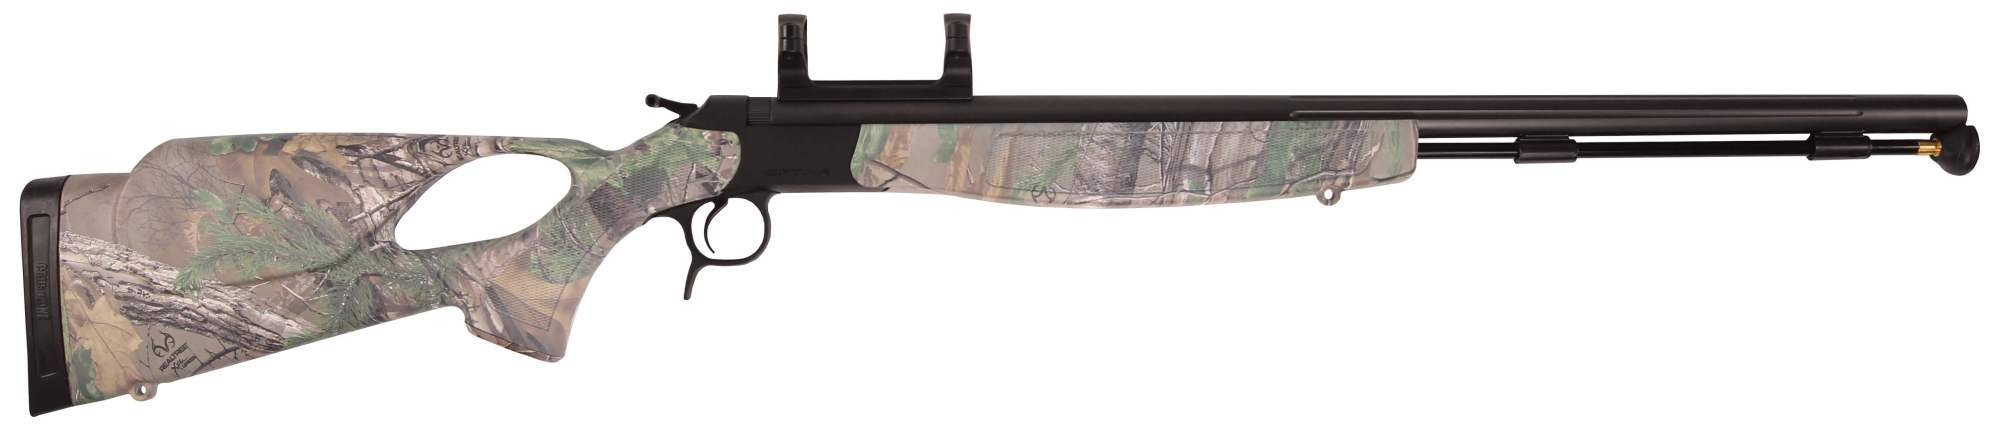 hight resolution of optima v2 stainless steel nitride with thumbhole camo realtree xtra green stock